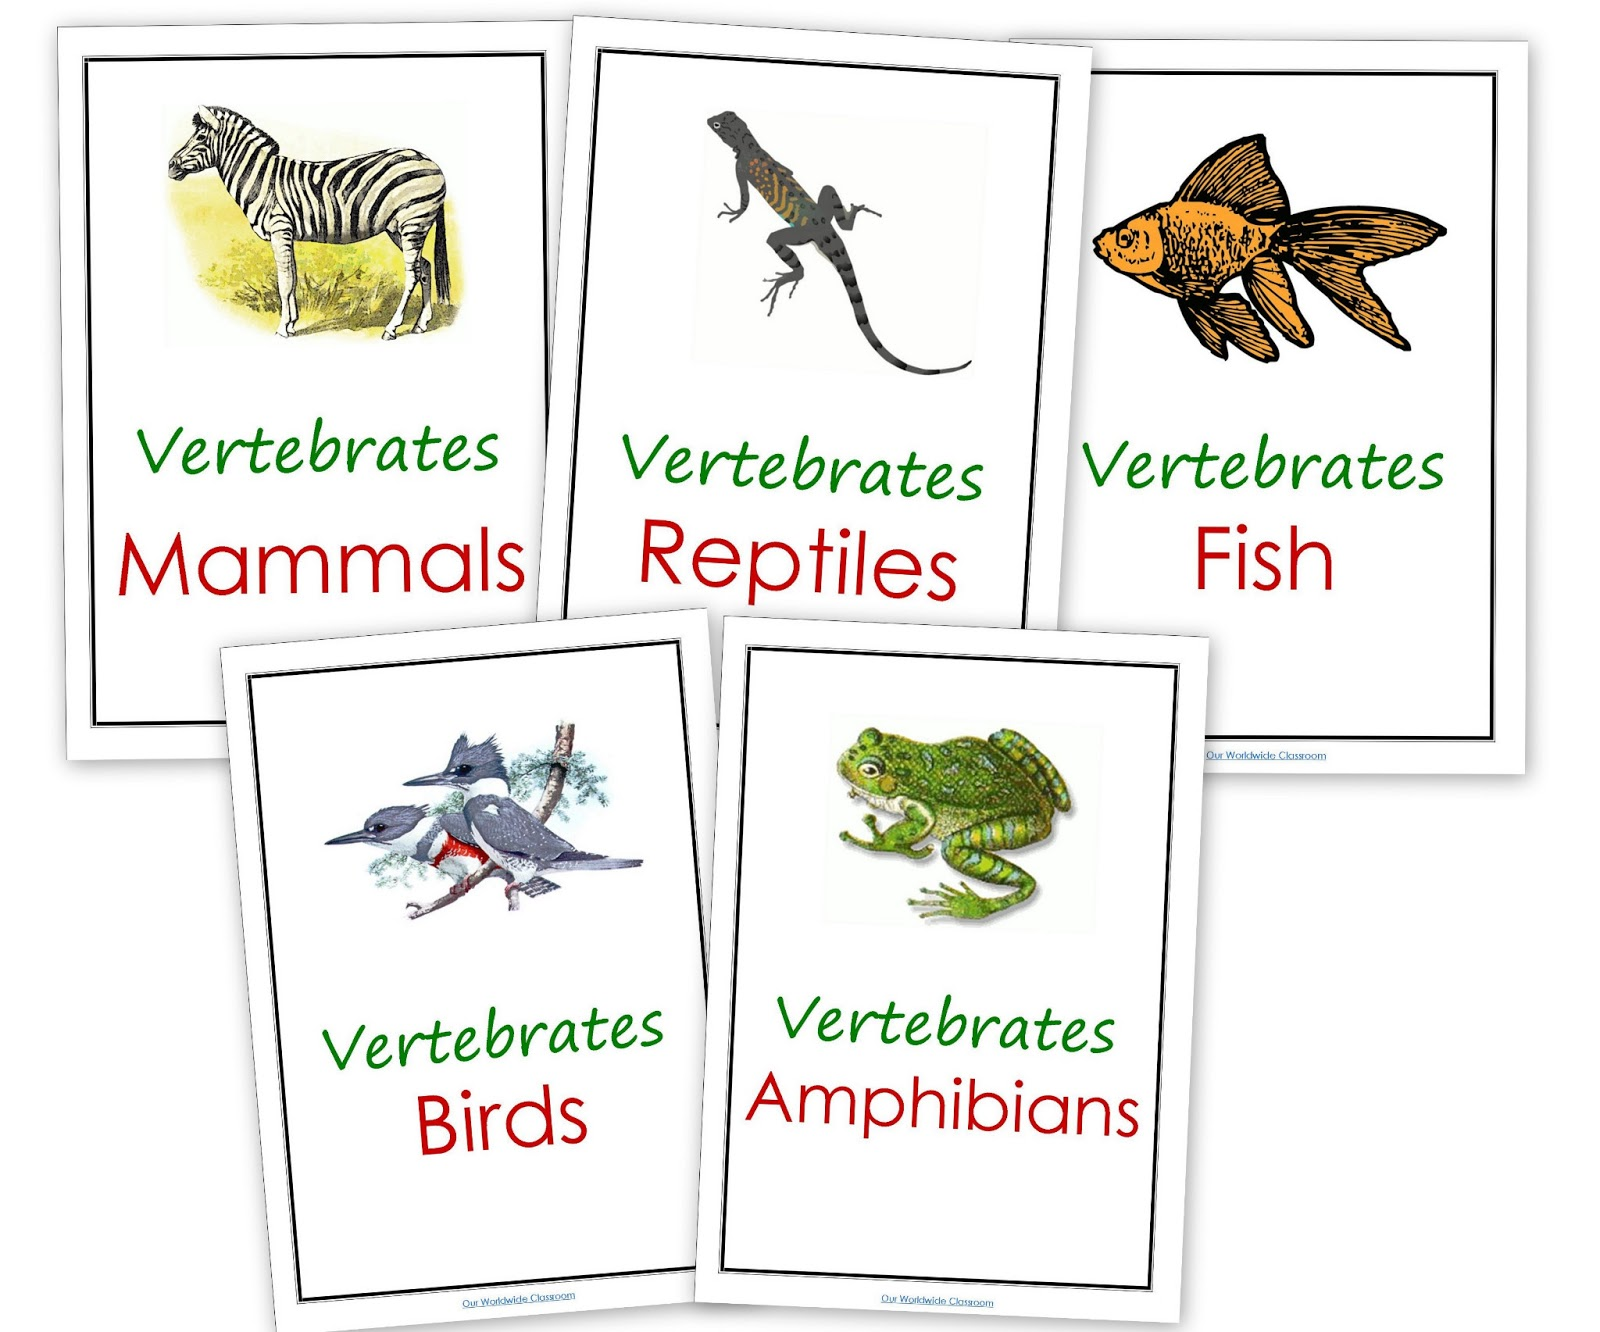 What Are Vertebrates